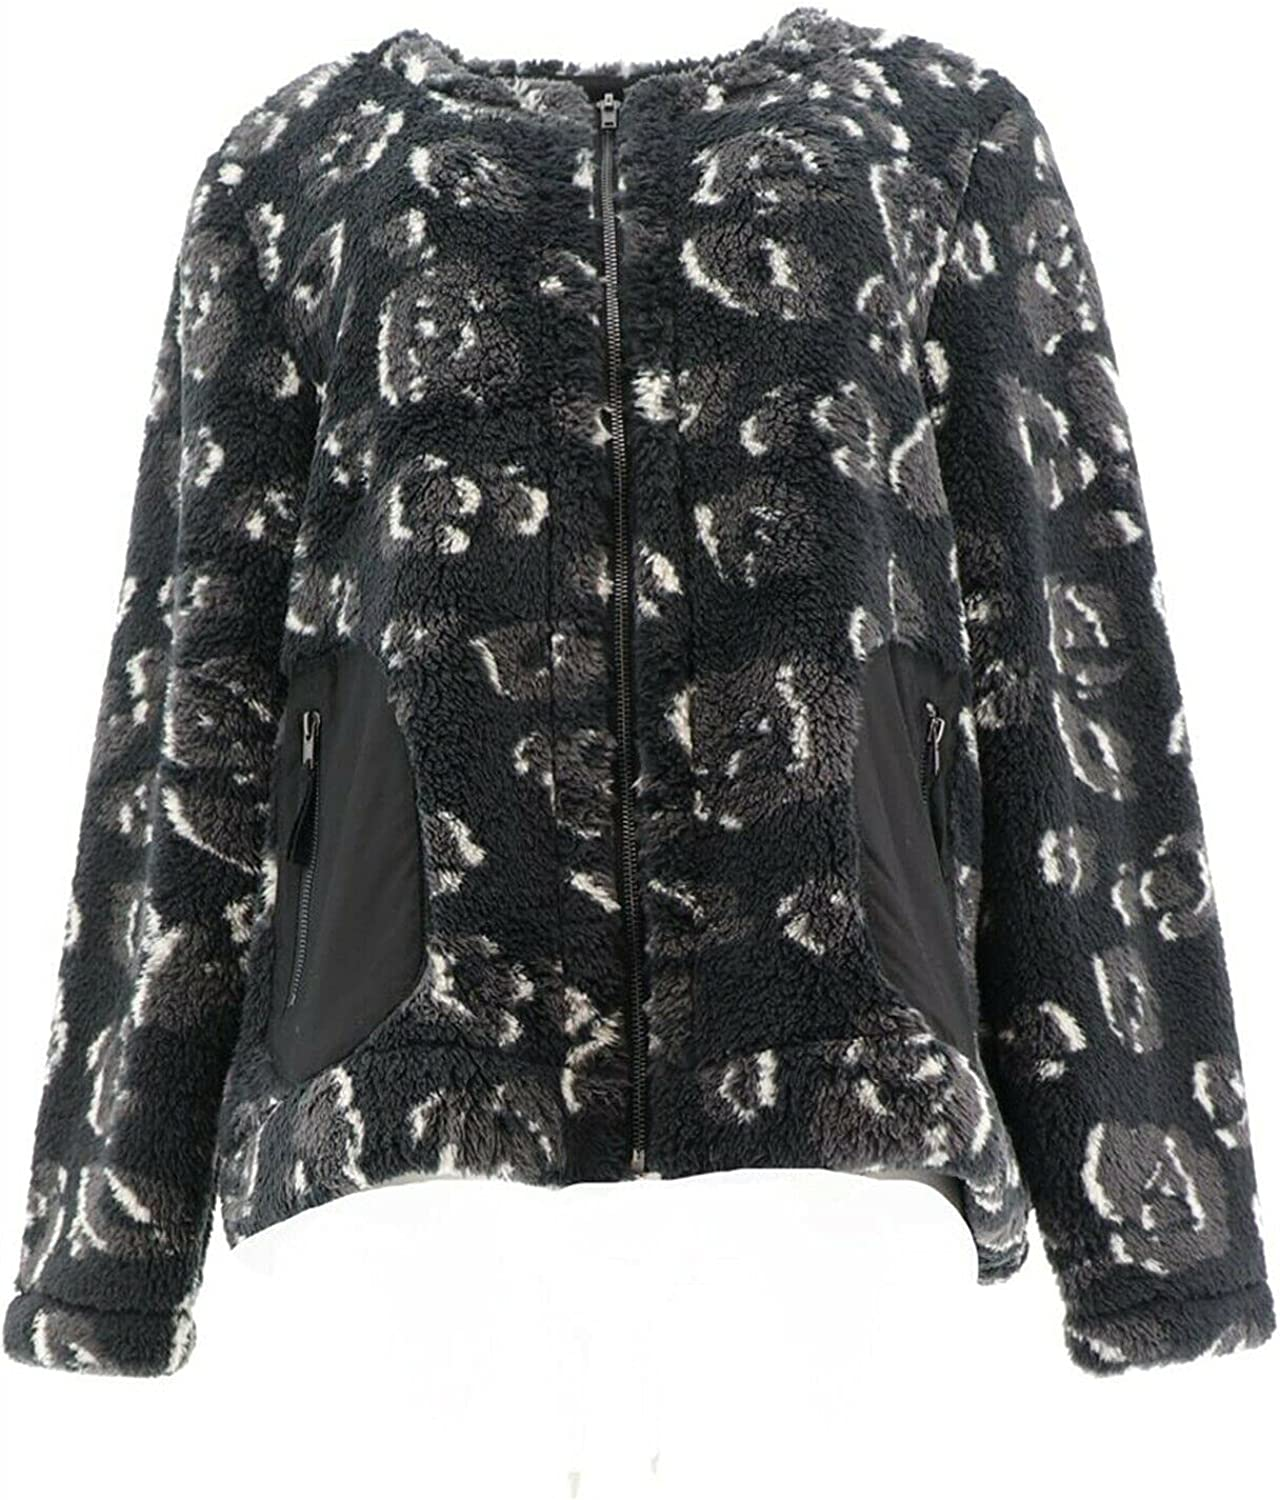 Logo Lounge Lori Goldstein Leopard All stores are price sold A387322 Jacket Black Sherpa